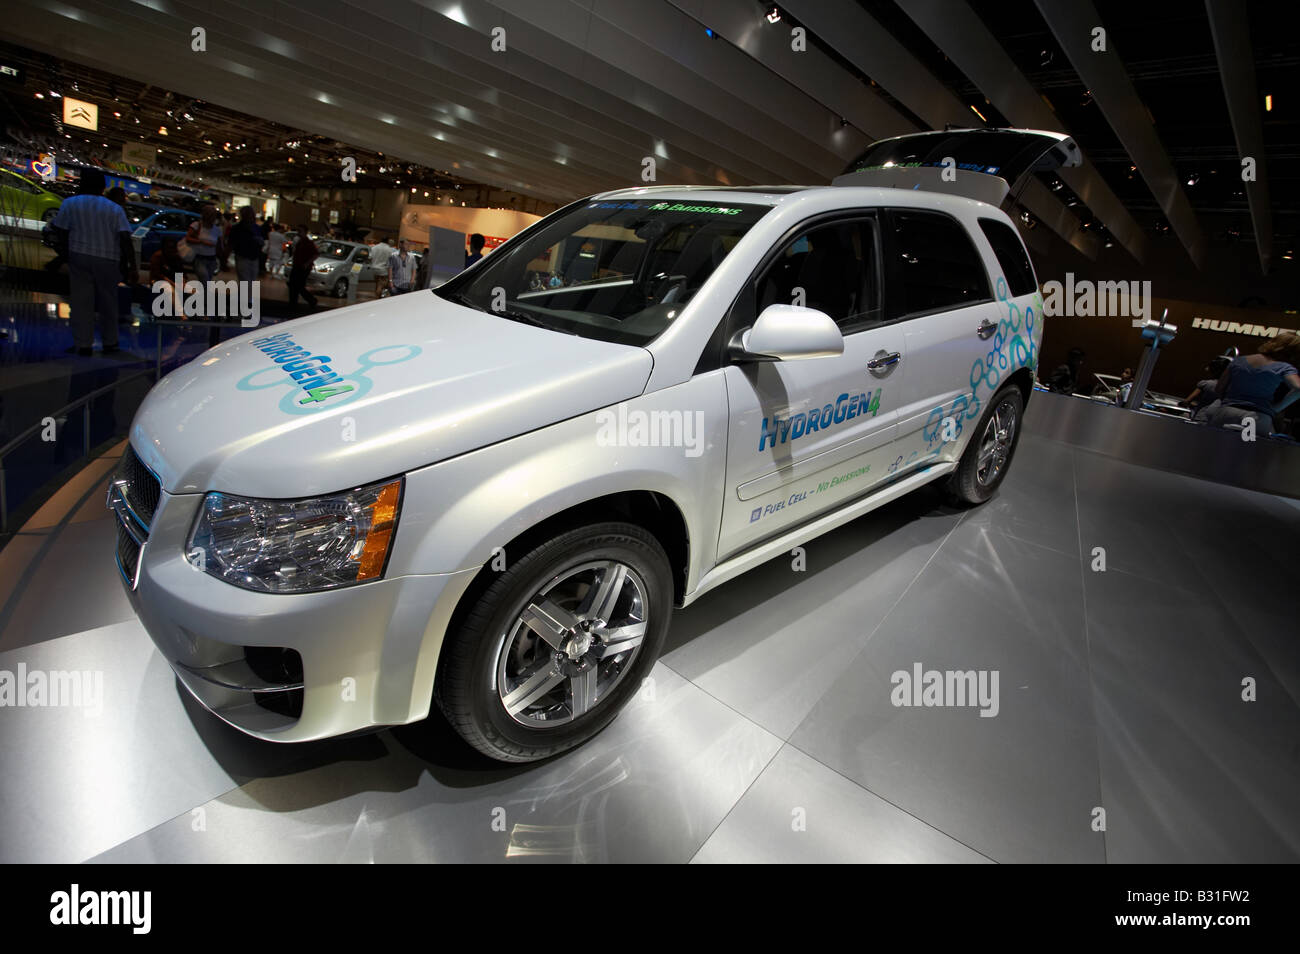 gm general motors chevy equinox fuel cell suv new hybrid off road car stock photo royalty free. Black Bedroom Furniture Sets. Home Design Ideas